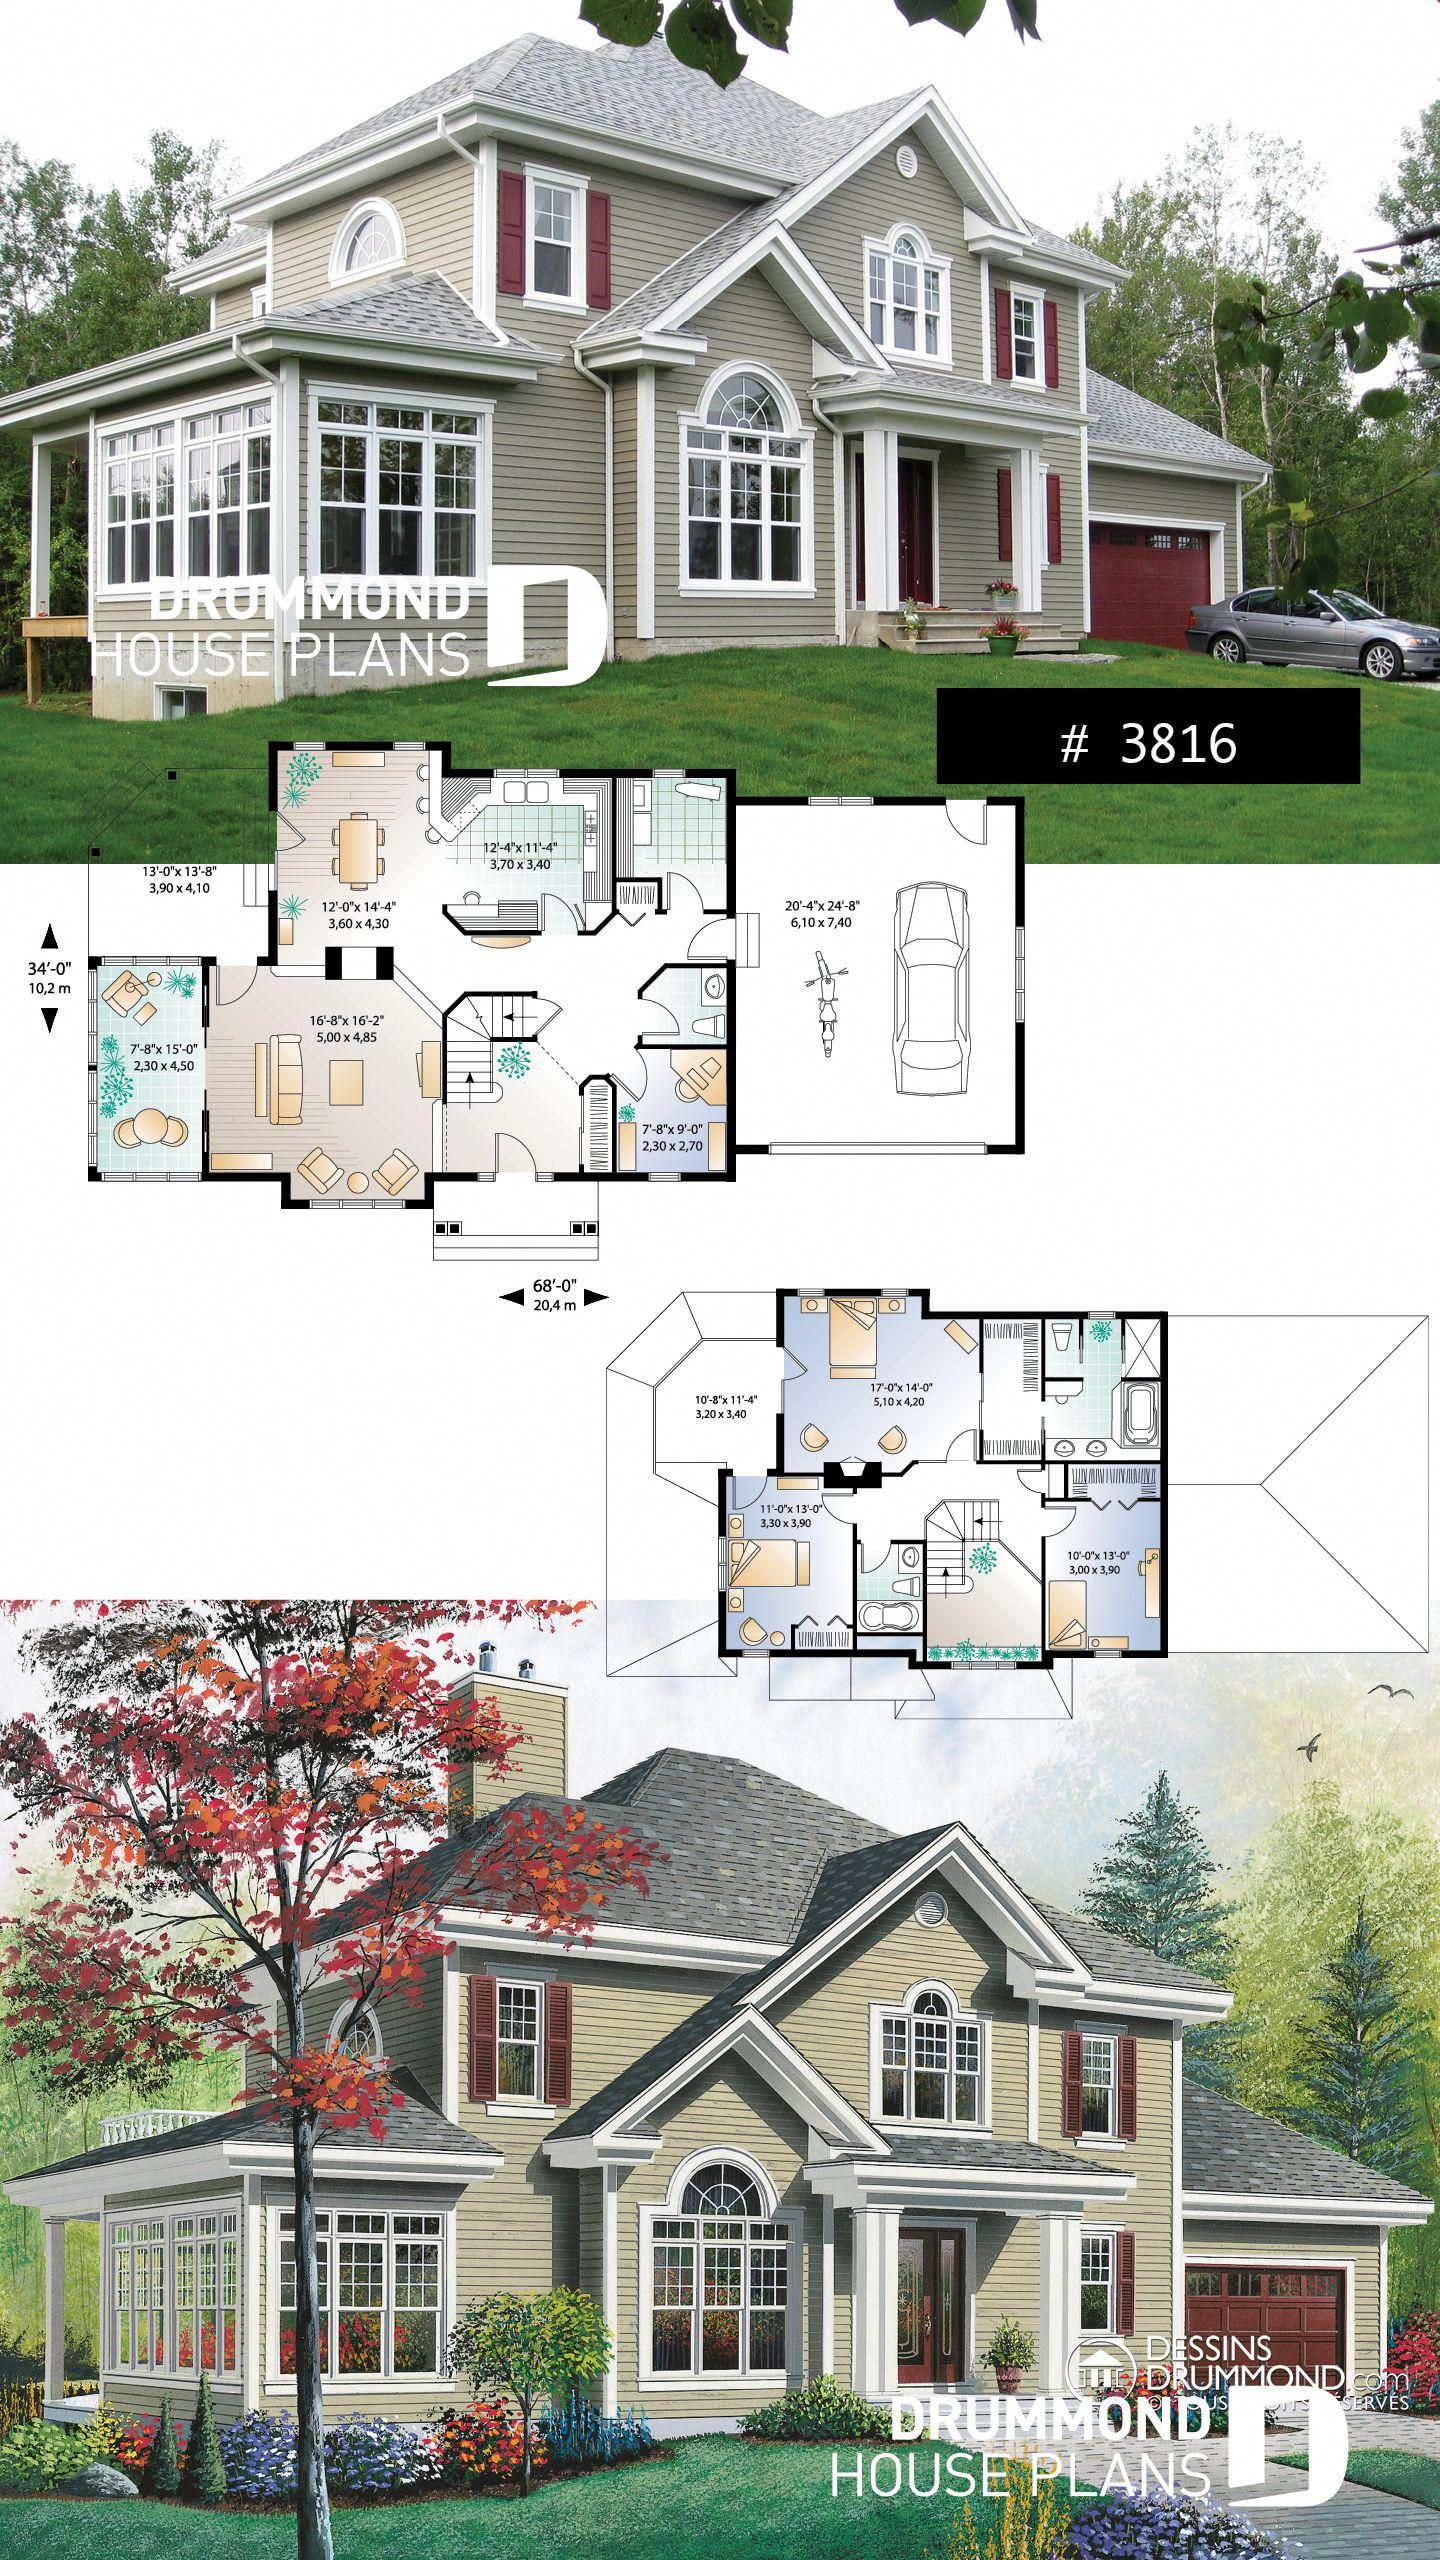 Pin by Susanna Tuominen on Sims in 2020 Family house